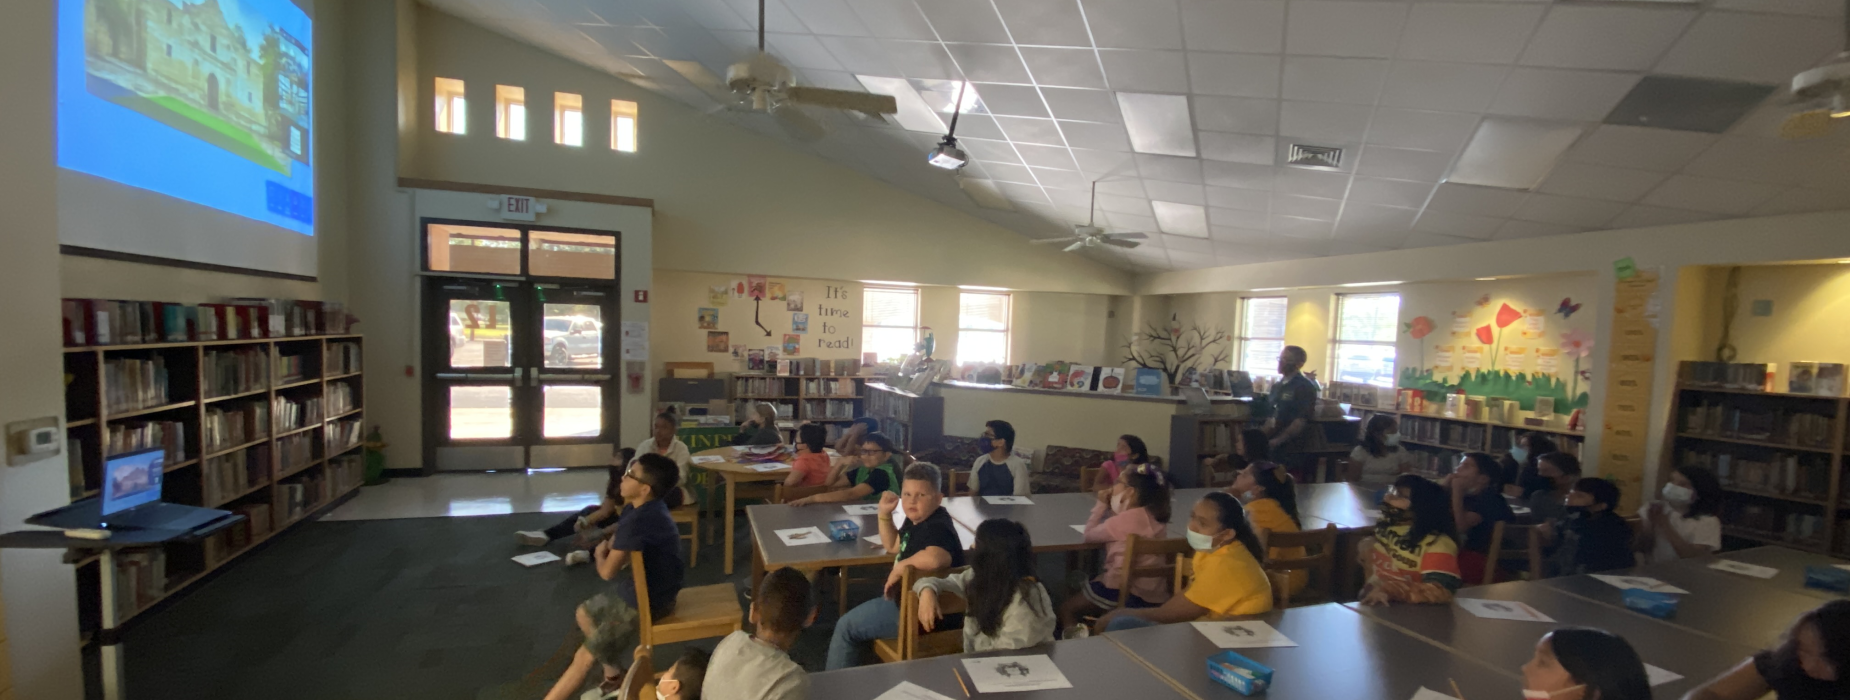 4th Grade interacting with Bullock Texas History Museum for a virtual field trip.